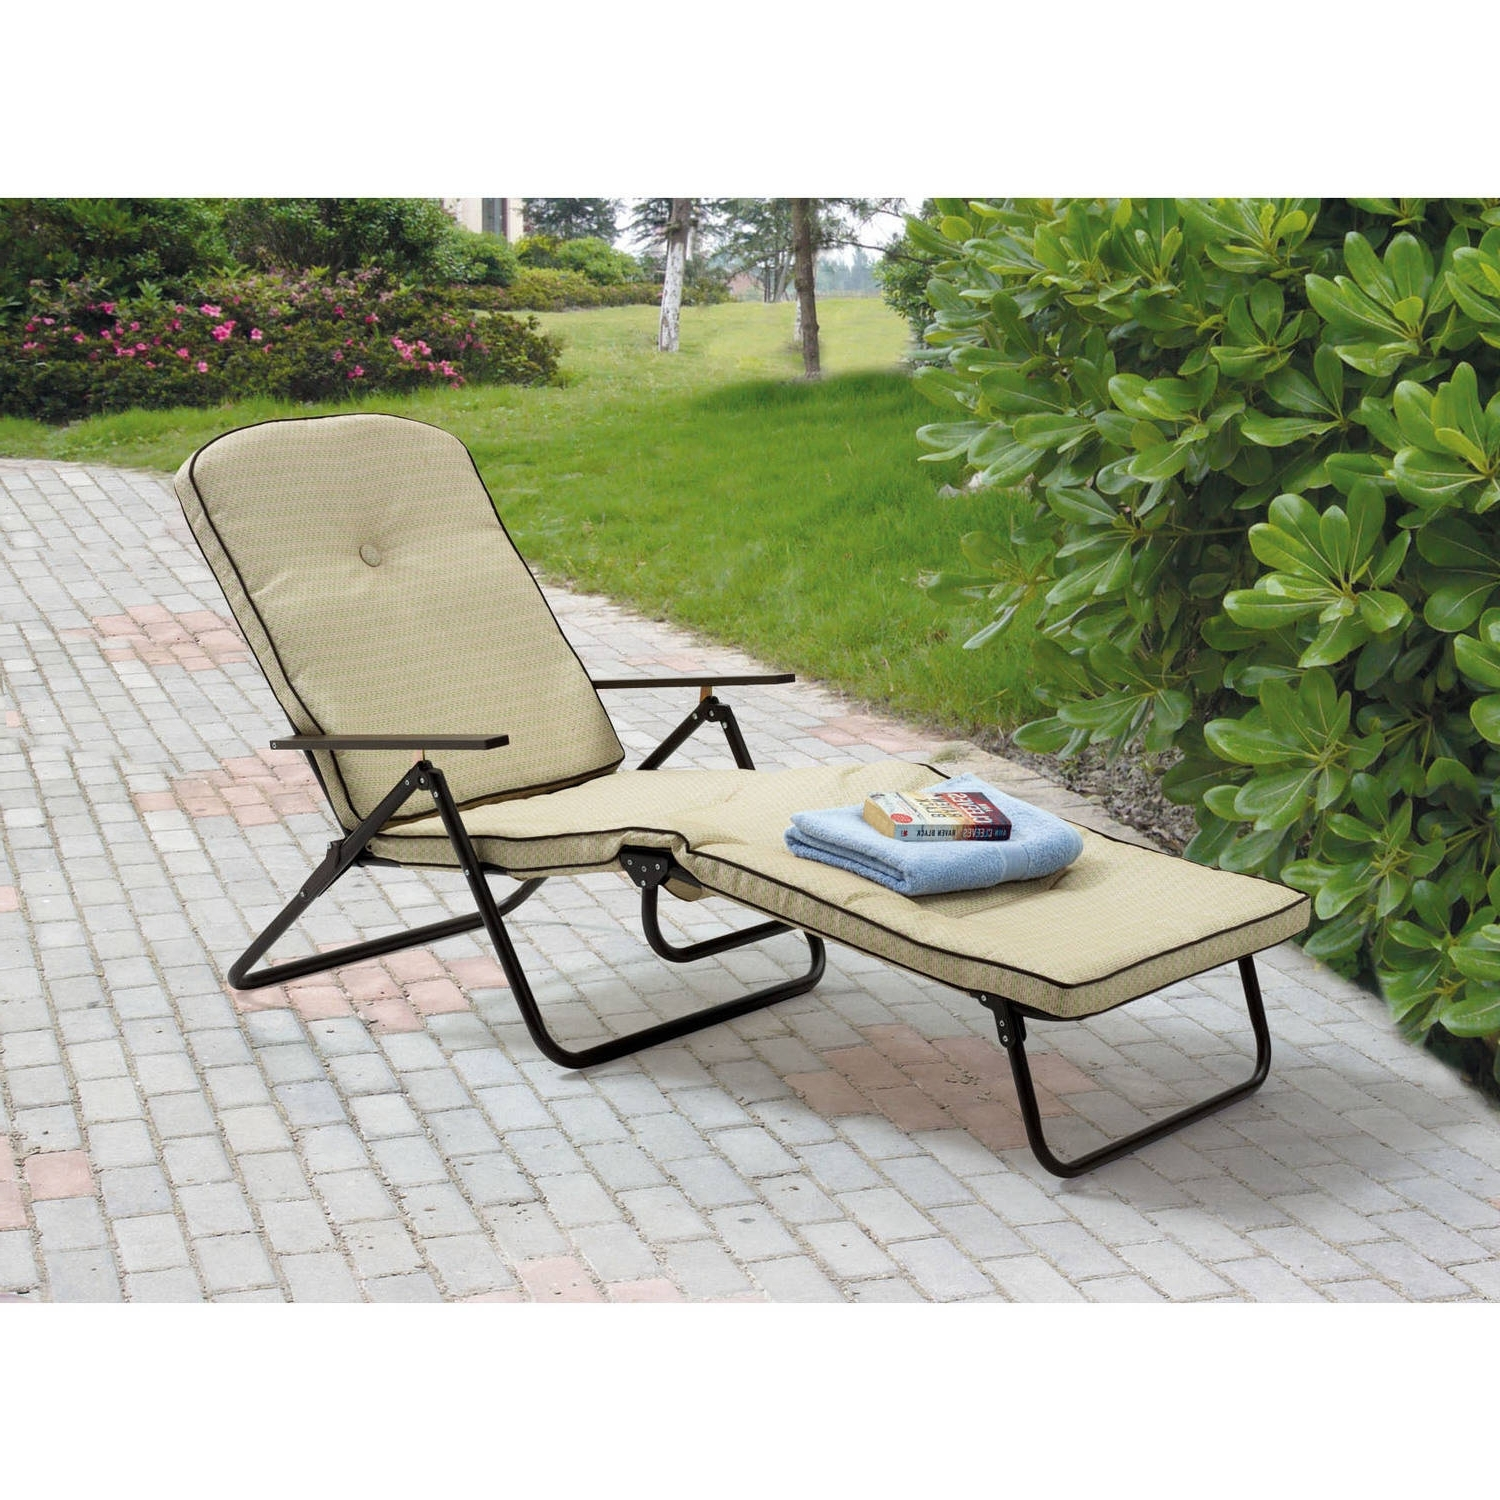 Mainstays Sand Dune Outdoor Padded Folding Chaise Lounge, Tan Regarding Current Foldable Chaise Lounges (View 12 of 15)